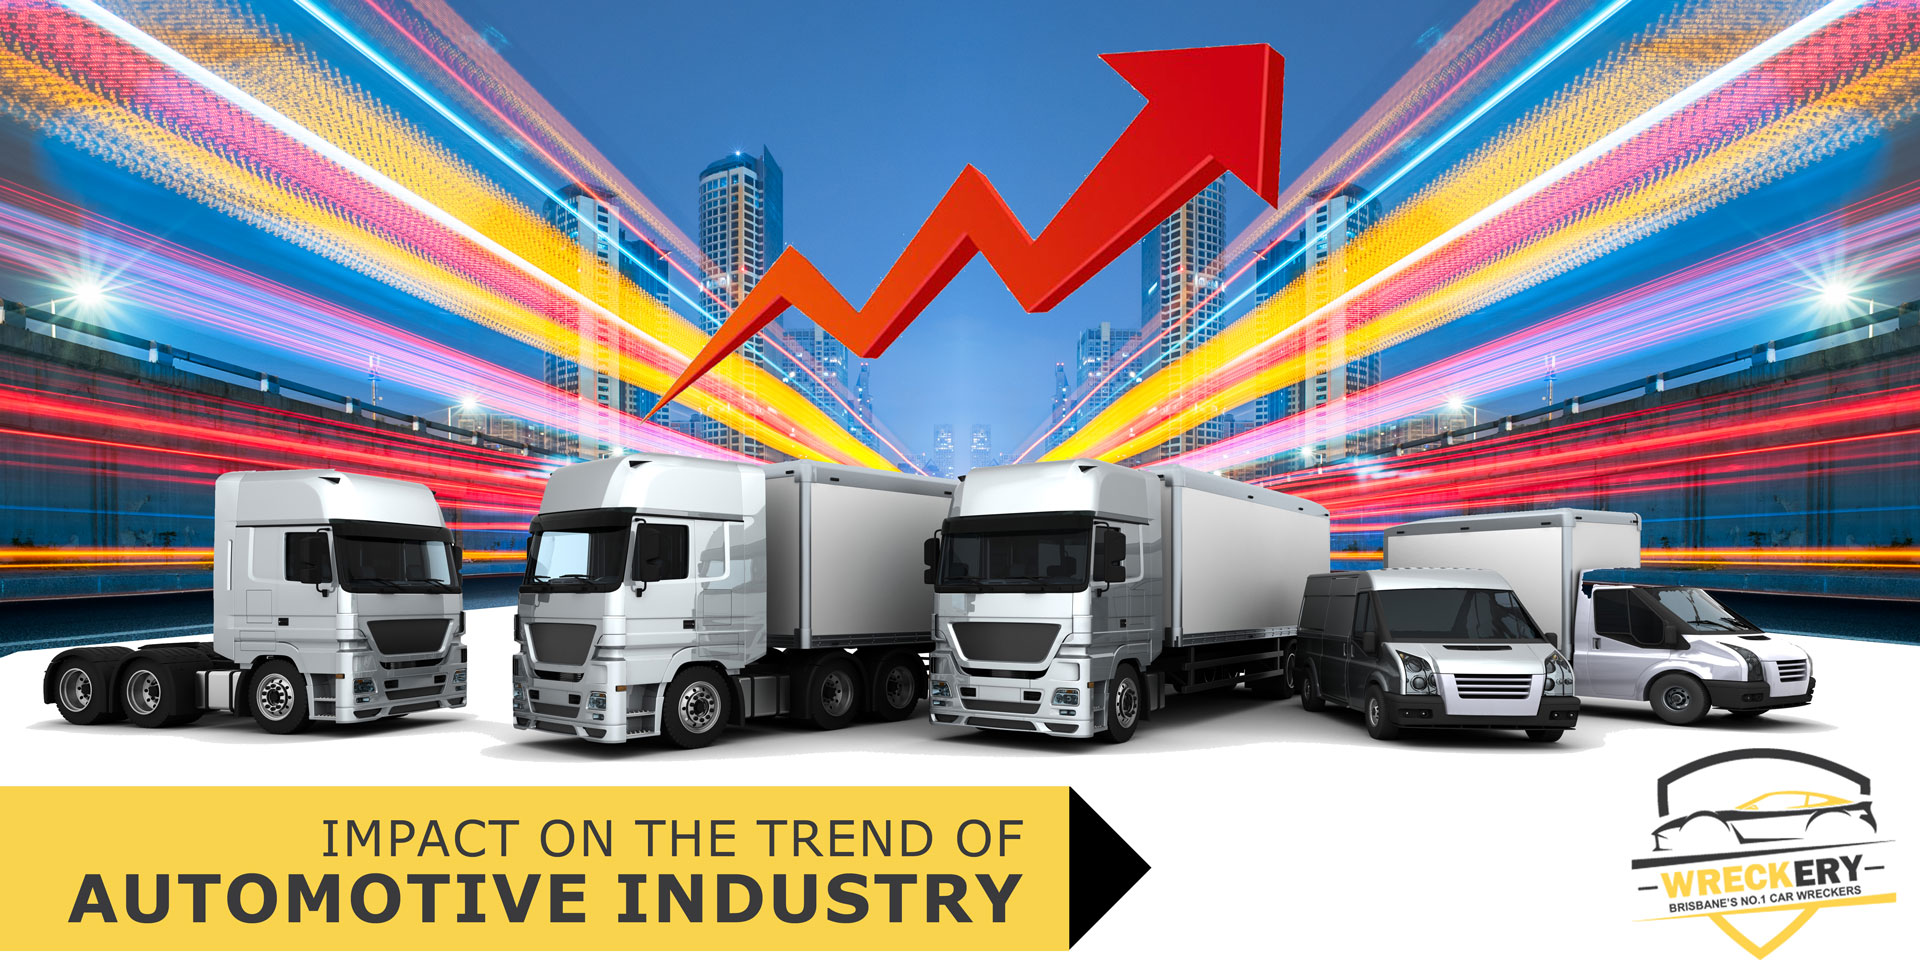 What are the factors that impact on trend of Automotive Industry